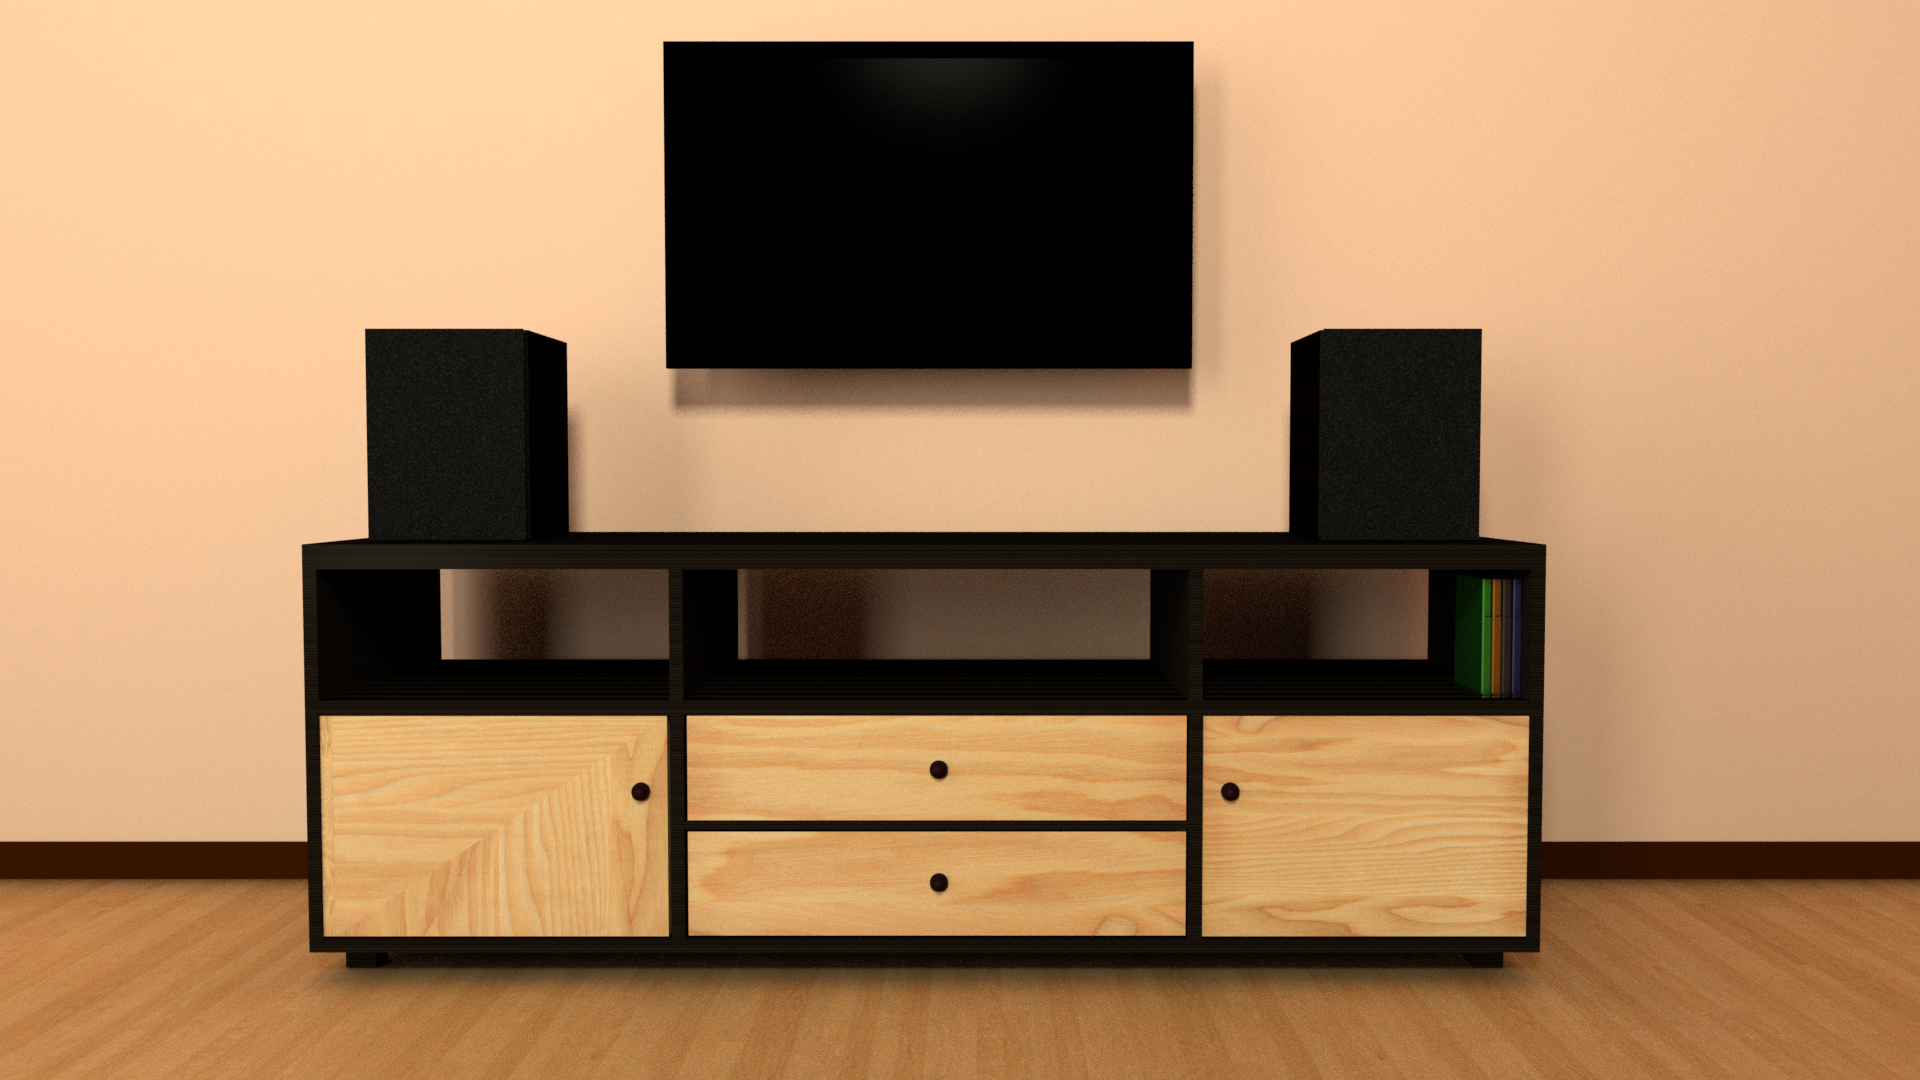 TV rack preview image 1